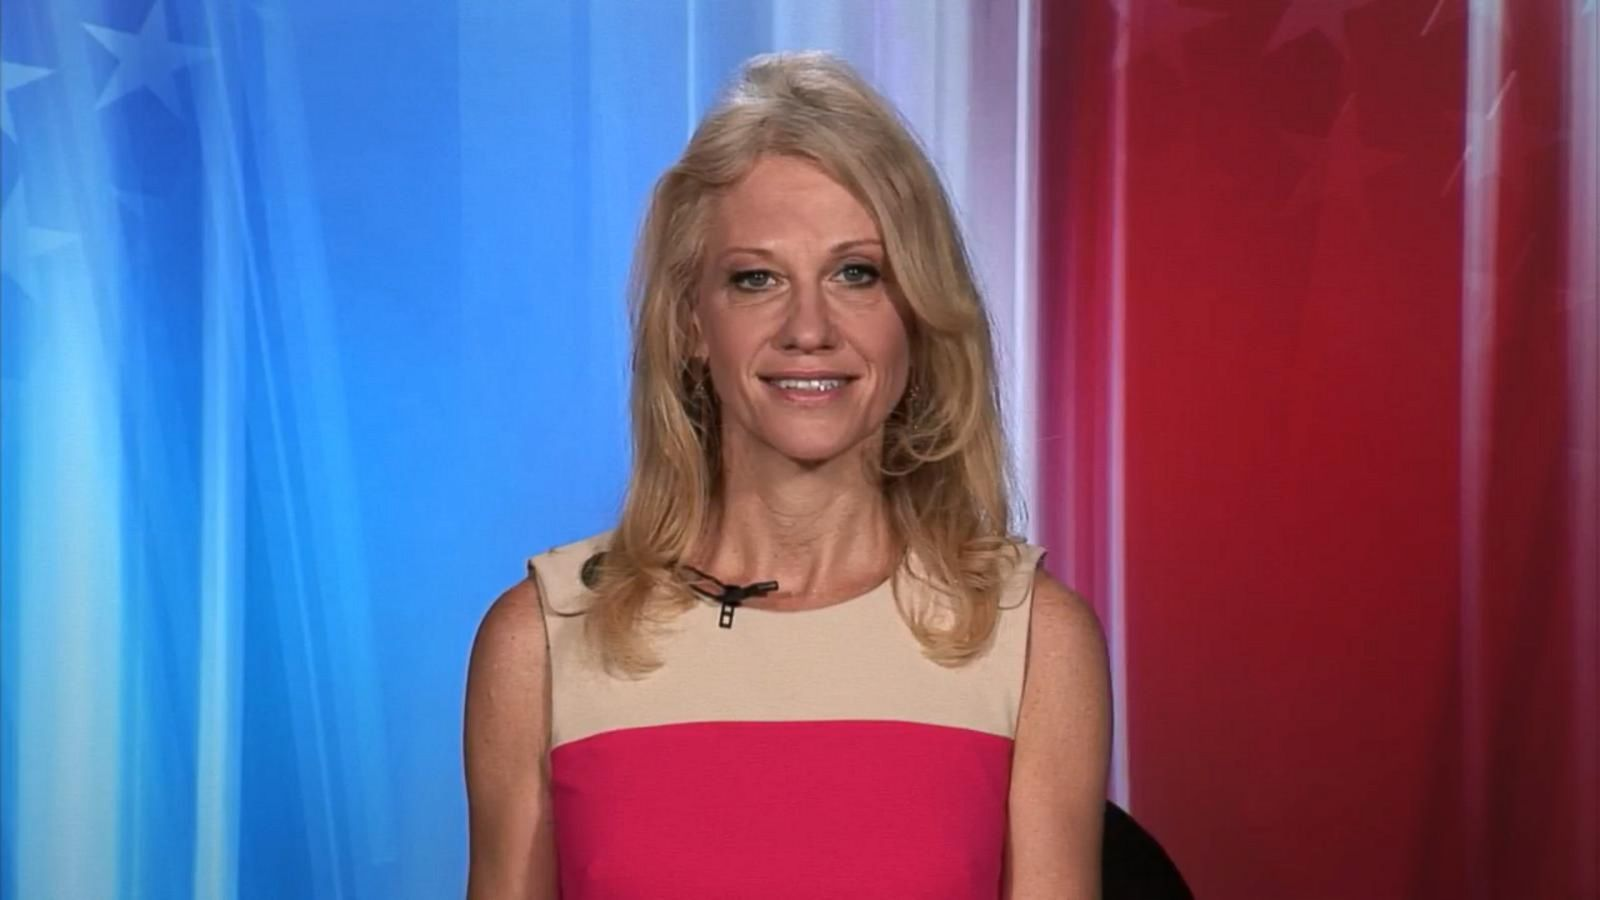 VIDEO: Kellyanne Conway on Clash With Clinton Aides